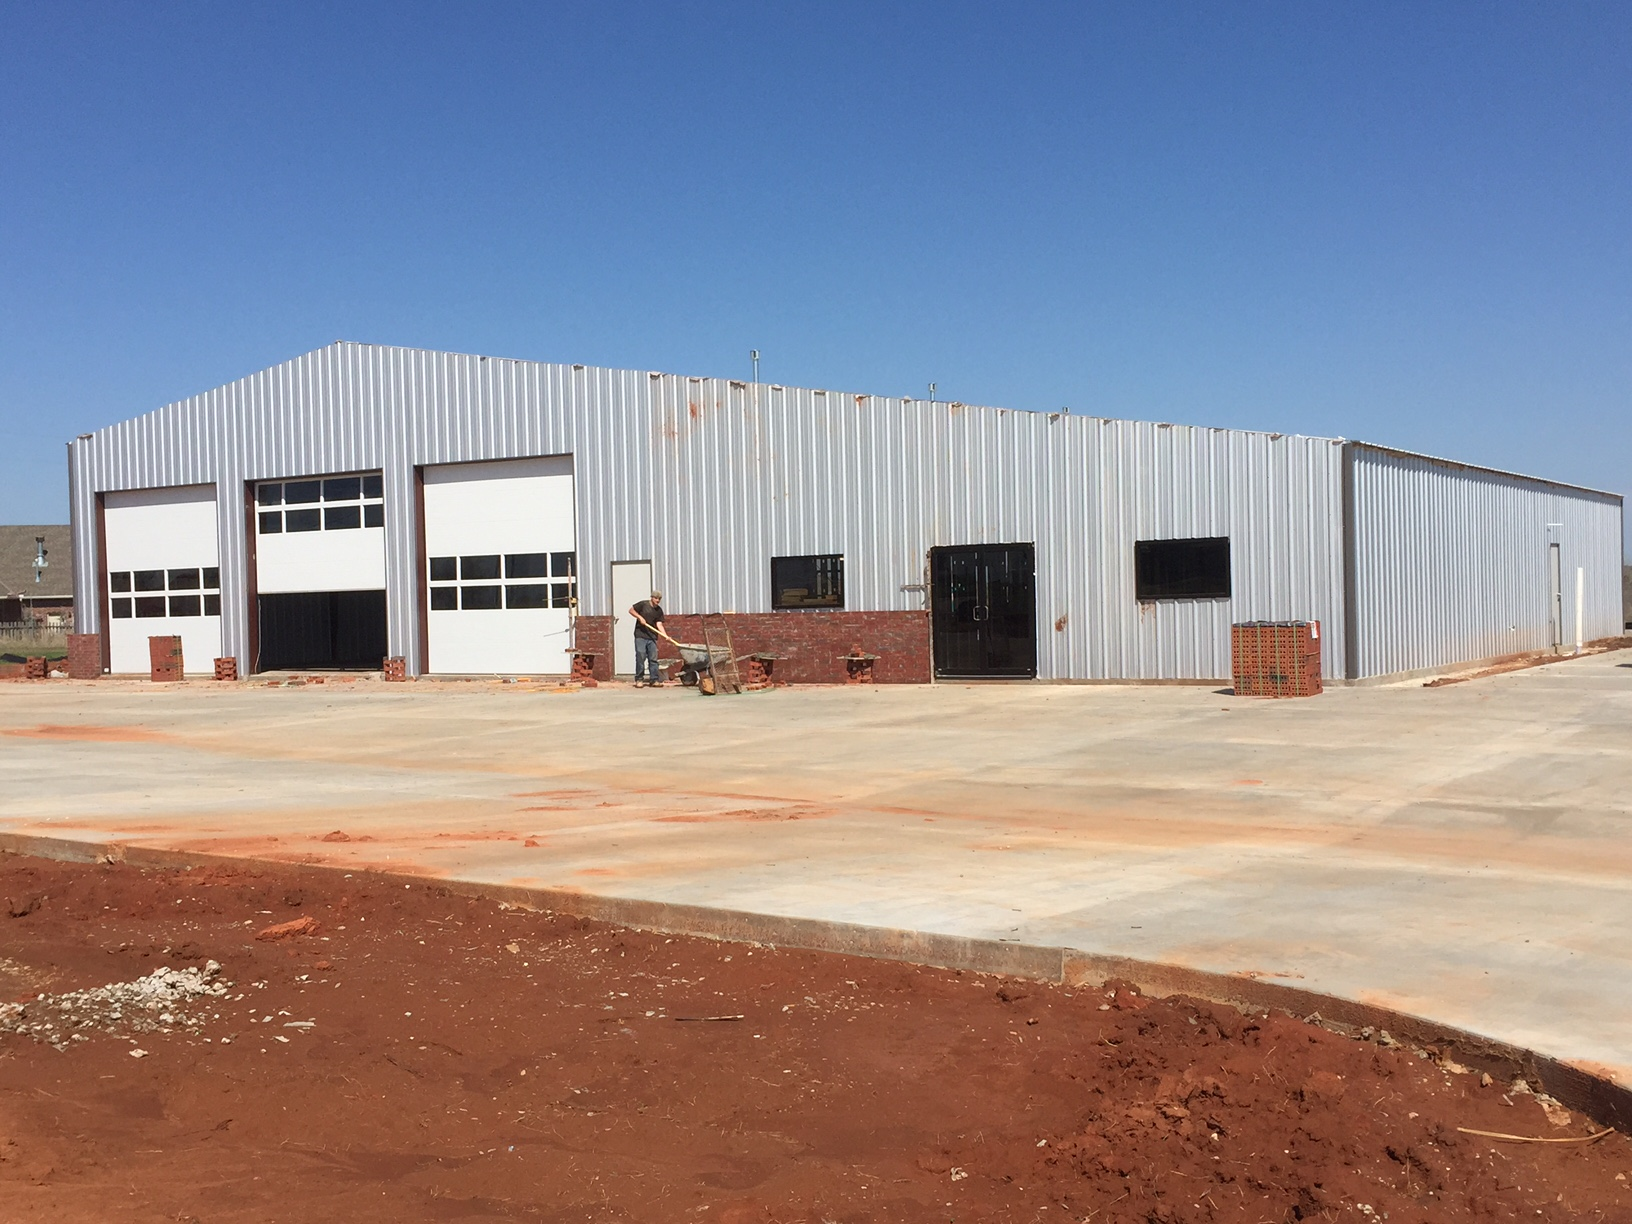 Fire Station Construction Steel Doors Edmond Oklahoma